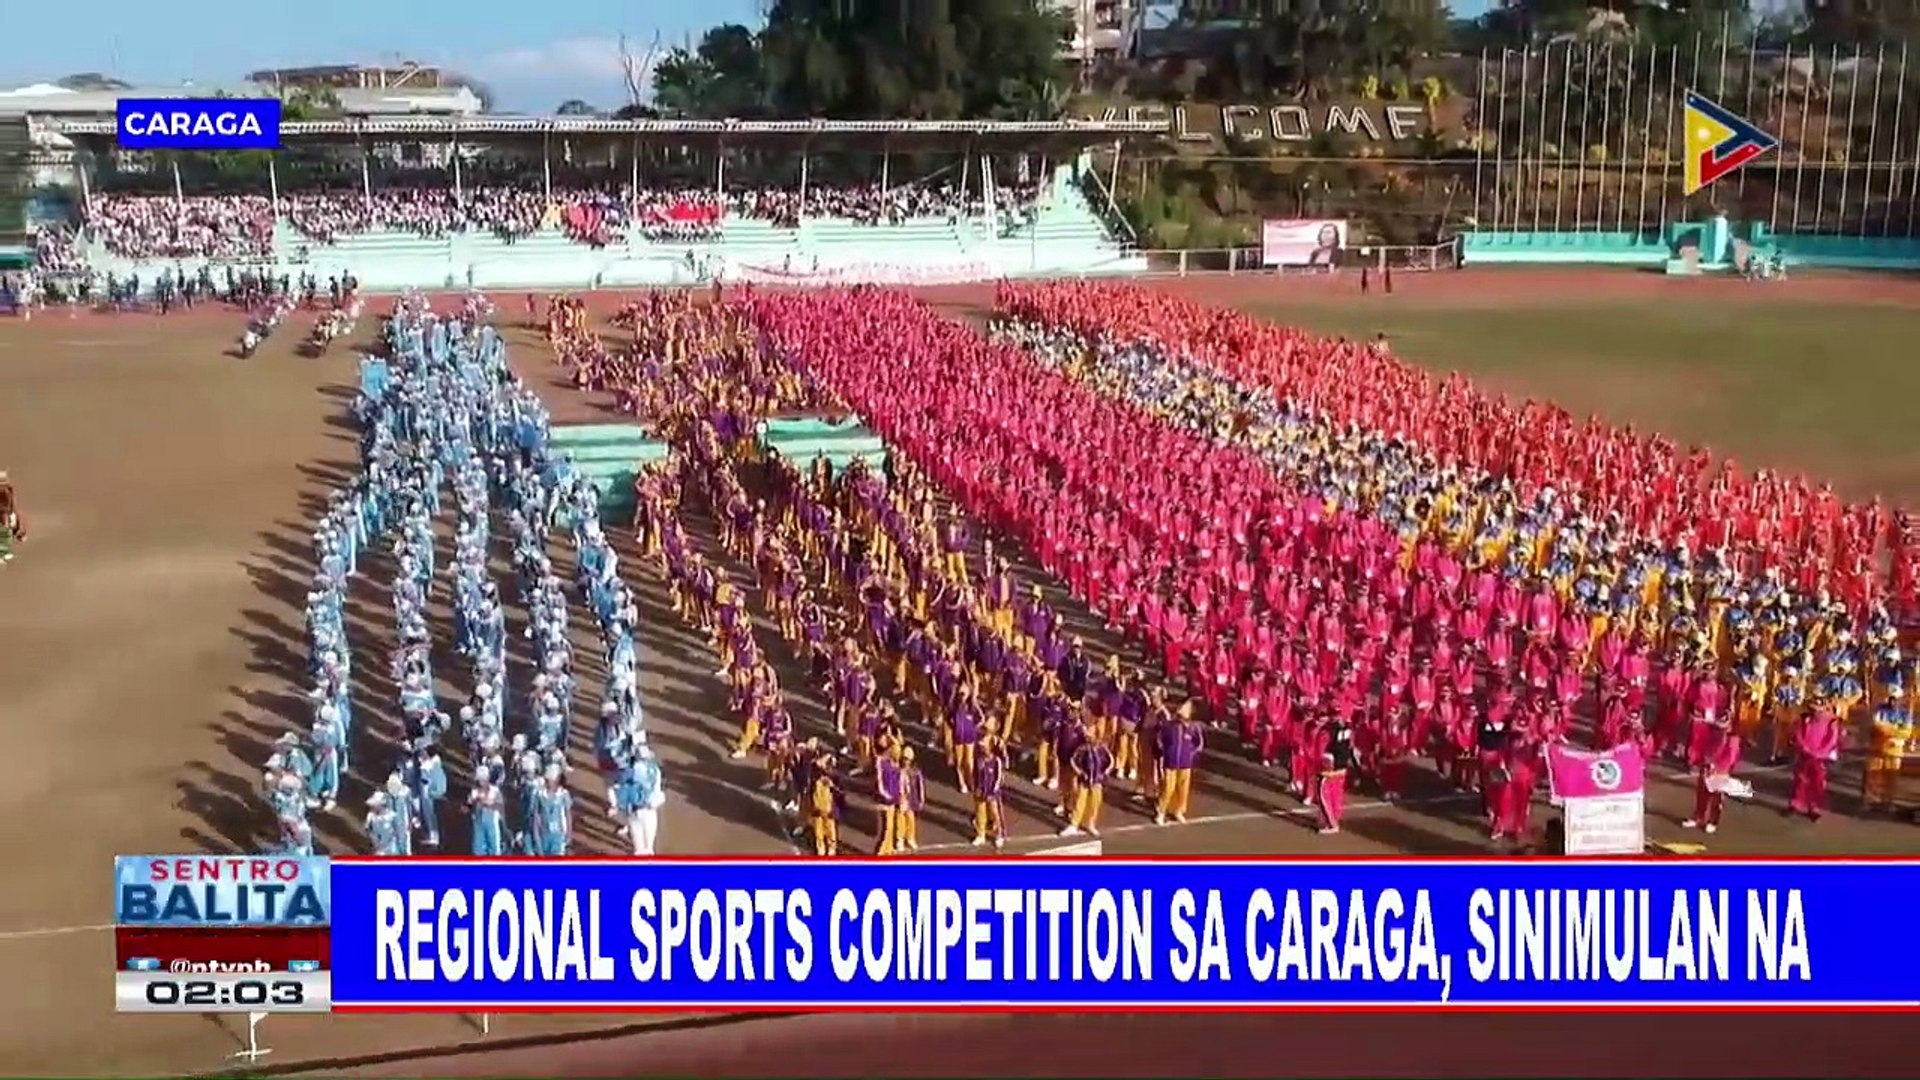 SPORTS BALITA: Regional sports competition sa CARAGA, sinimulan na